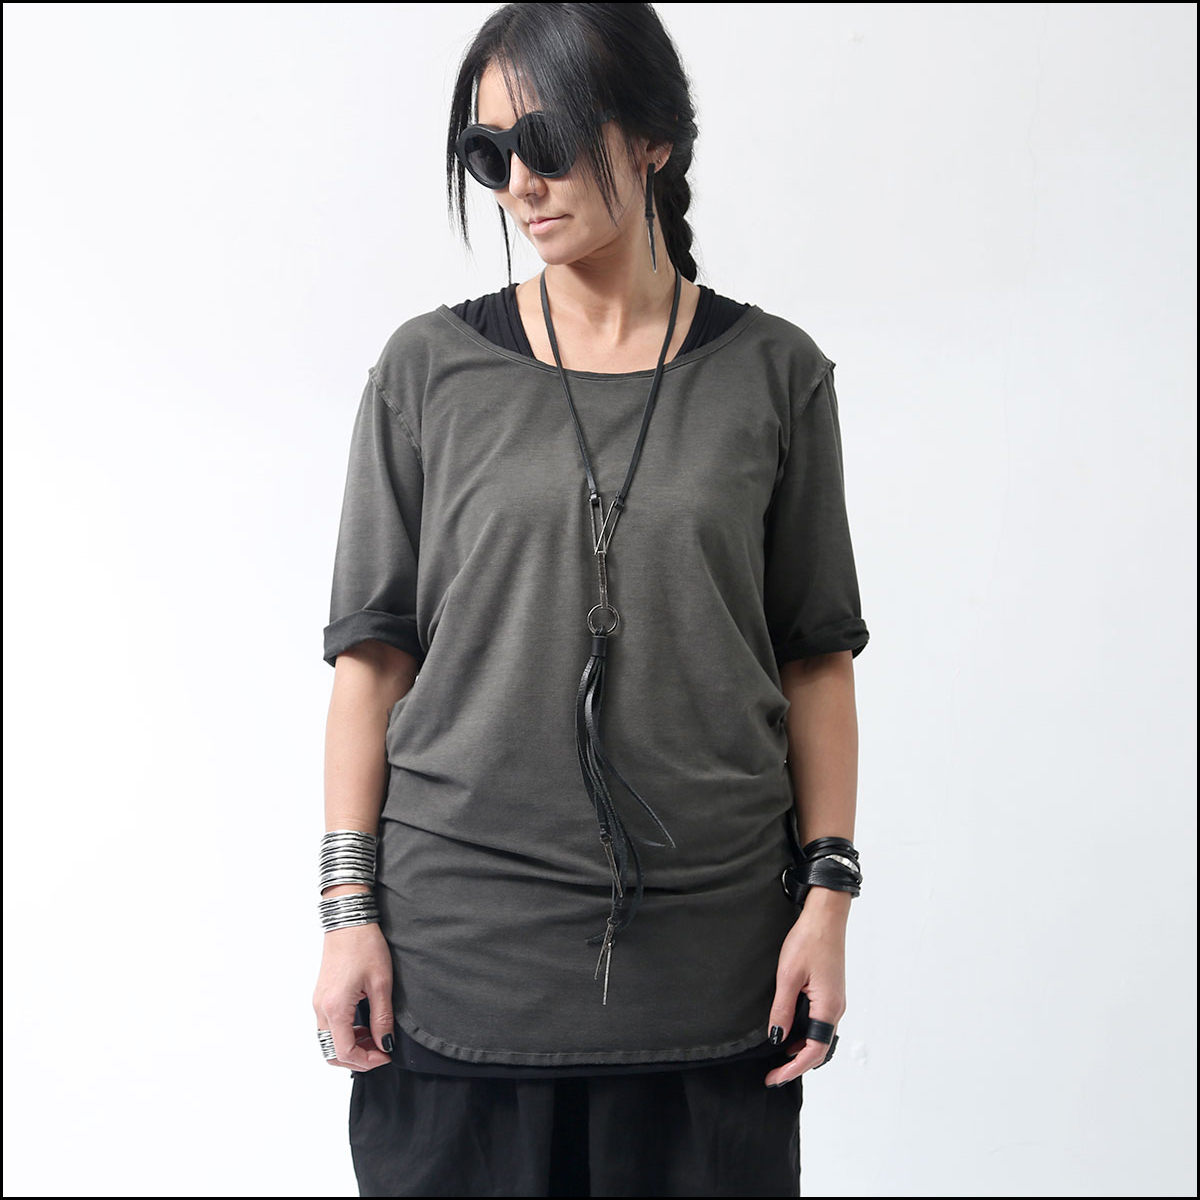 NOSTRASANTISSIMA_UNISEX DYED HALF SEEVE TEE TS08*1_GREY